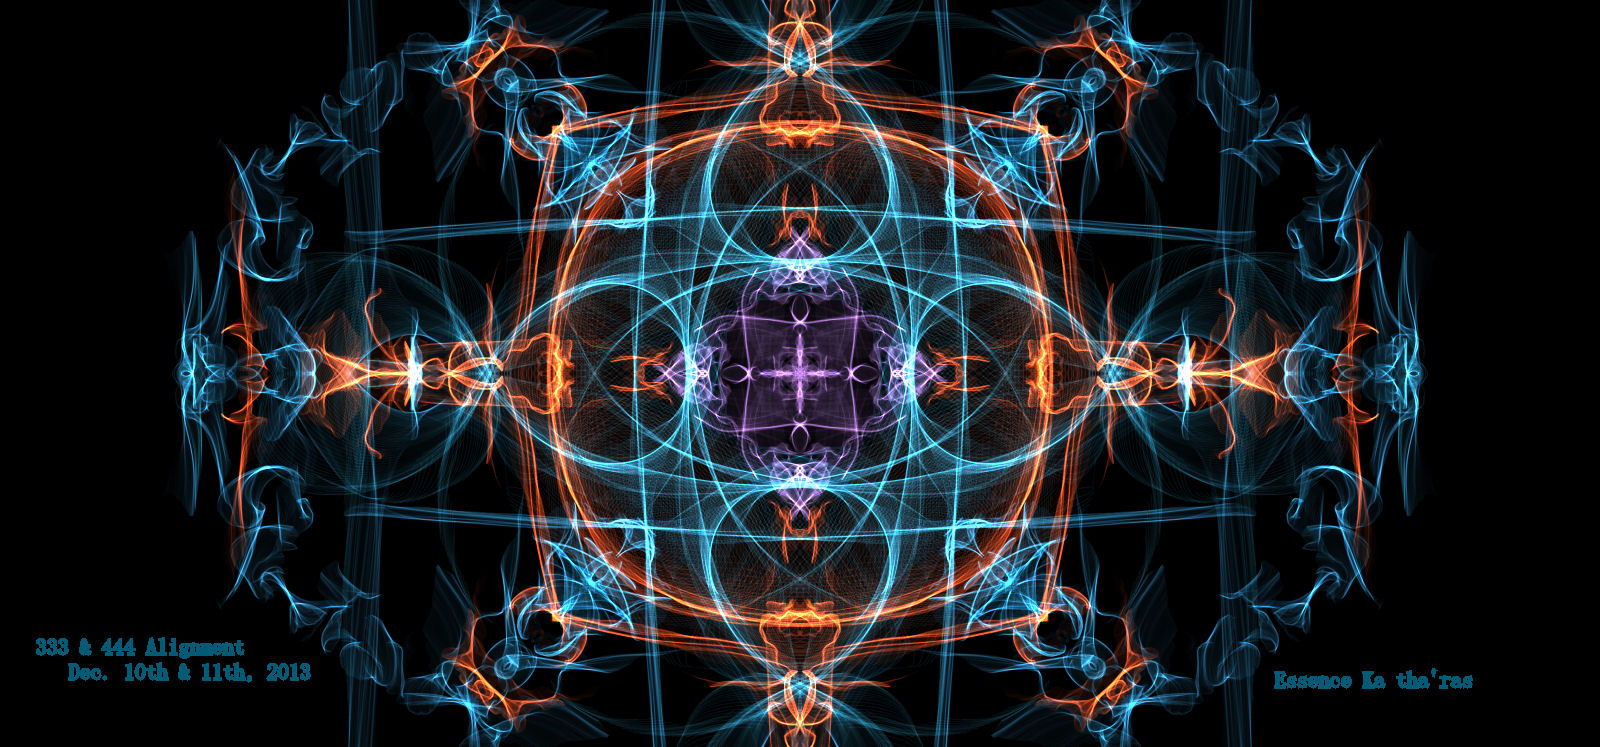 13/13 – Opening & Alignment Visuals of the 333 & 444 Gateway Portals